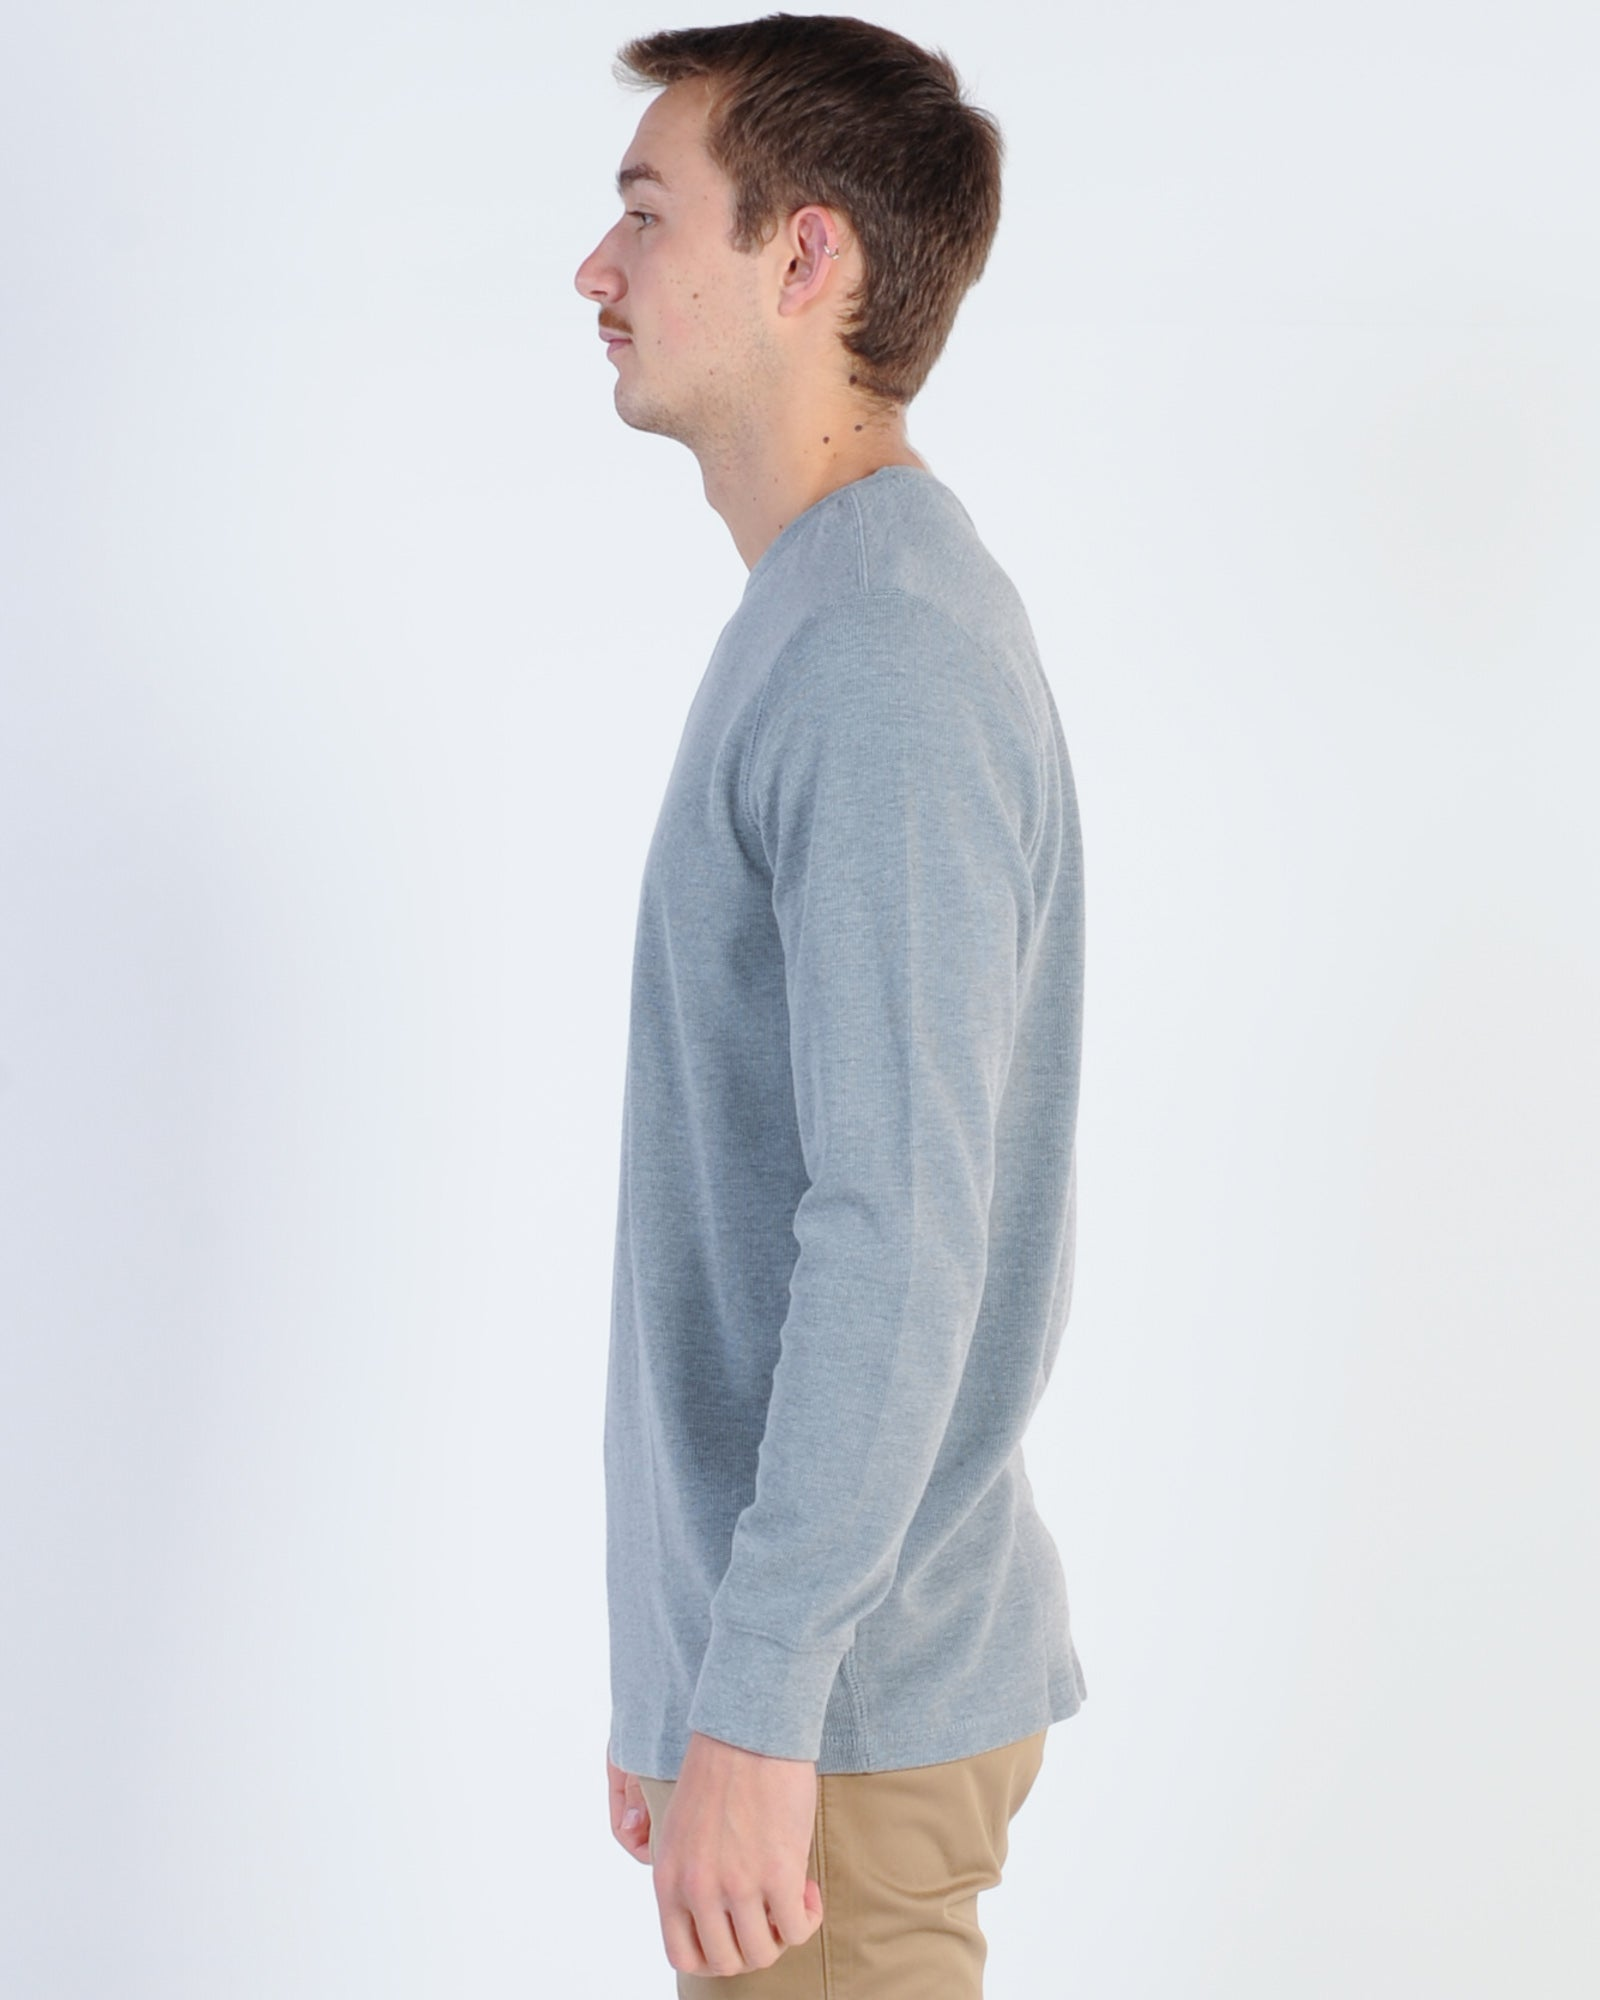 Academy Workers Crew Knit - Grey Marle